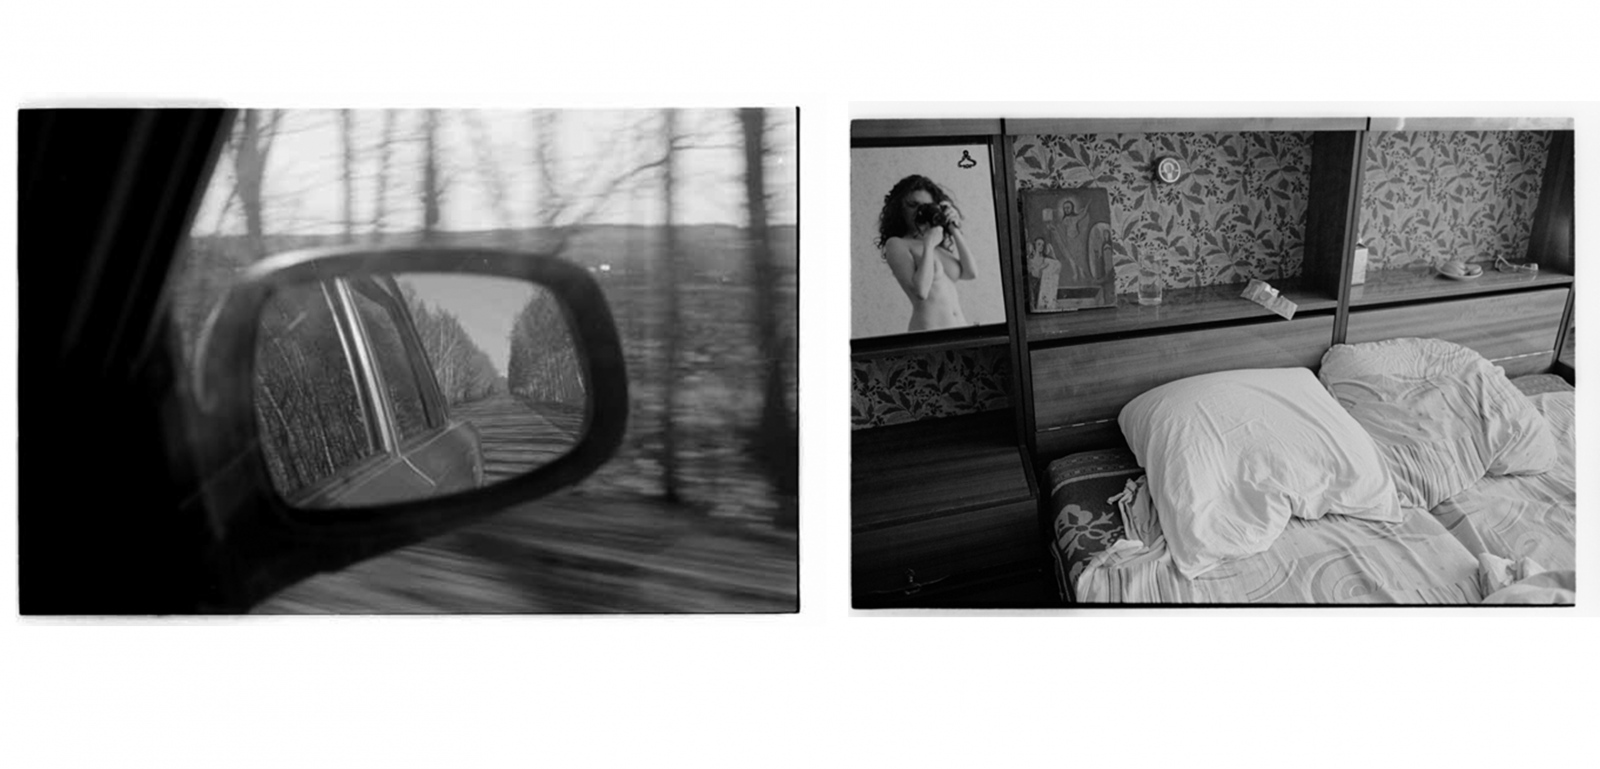 Art and Documentary Photography - Loading Way_Bed_Man_0.jpg